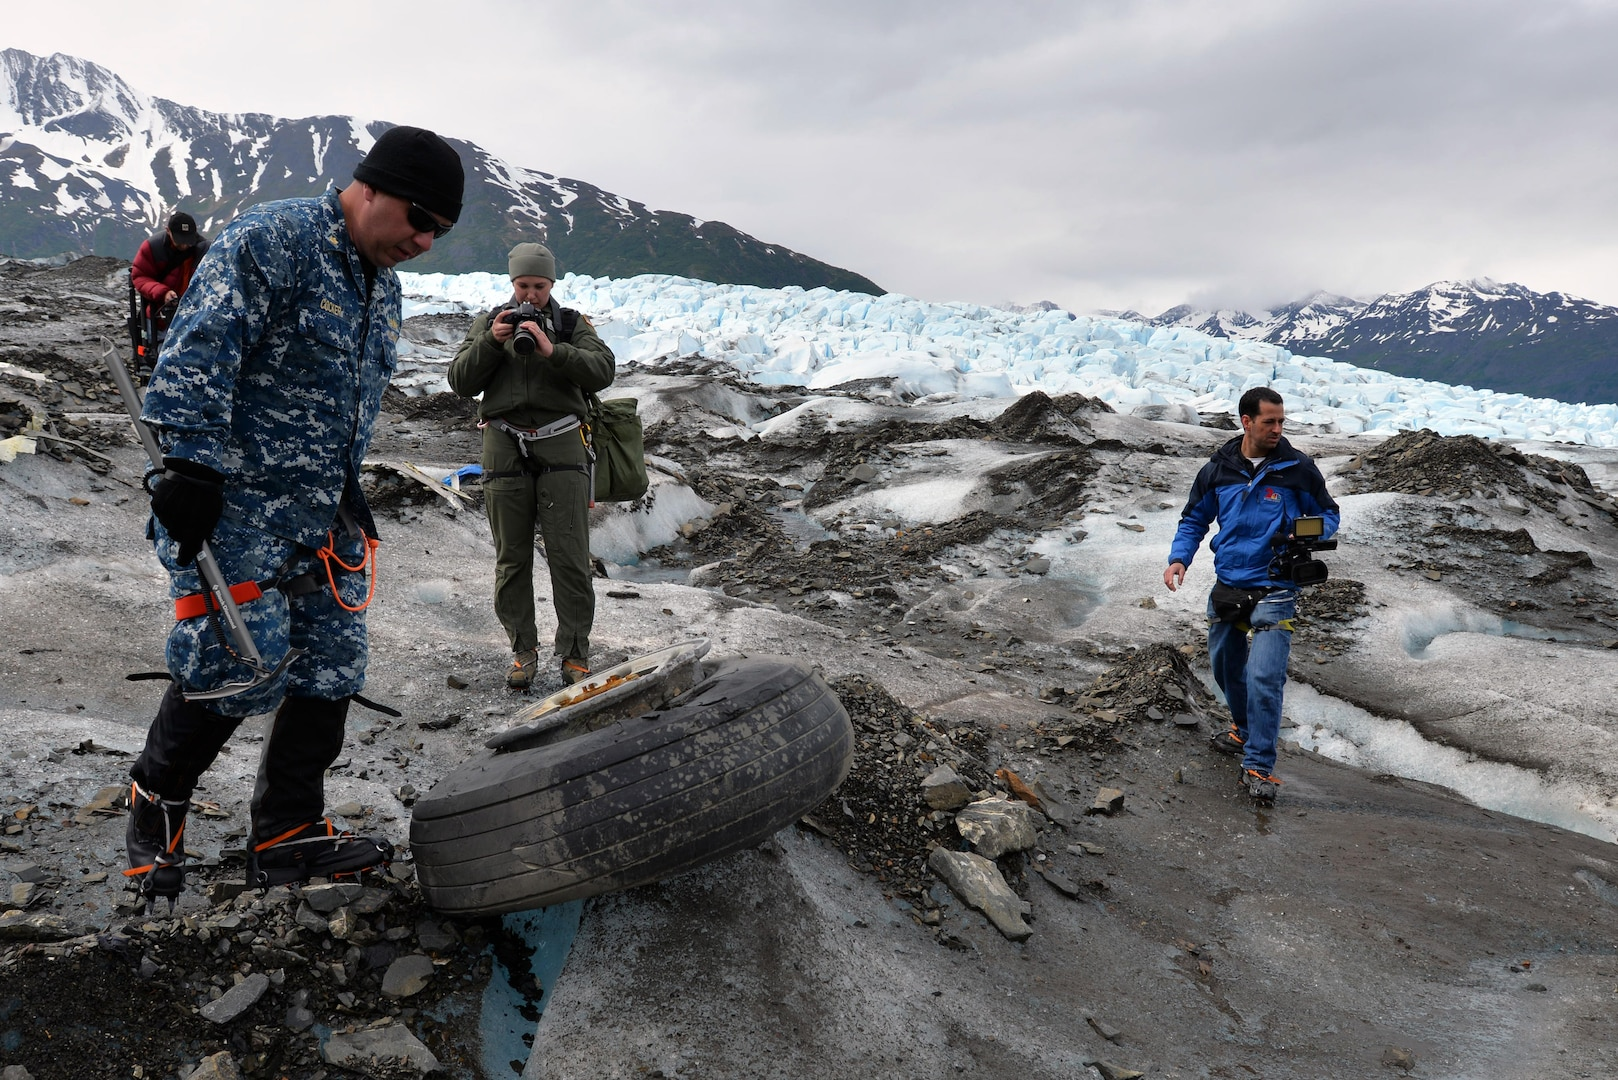 Navy Lt. Cmdr. Paul Cocker, left, the Alaskan Command deputy chief of future operations and Operation Colony Glacier project officer, shows local media some of the aircraft debris from the 1952 C-124 Globemaster II accident, June 10, 2015. Each summer since 2012, ALCOM has supported Operation Colony Glacier by removing aircraft debris and assisting in the recovery of human remains.